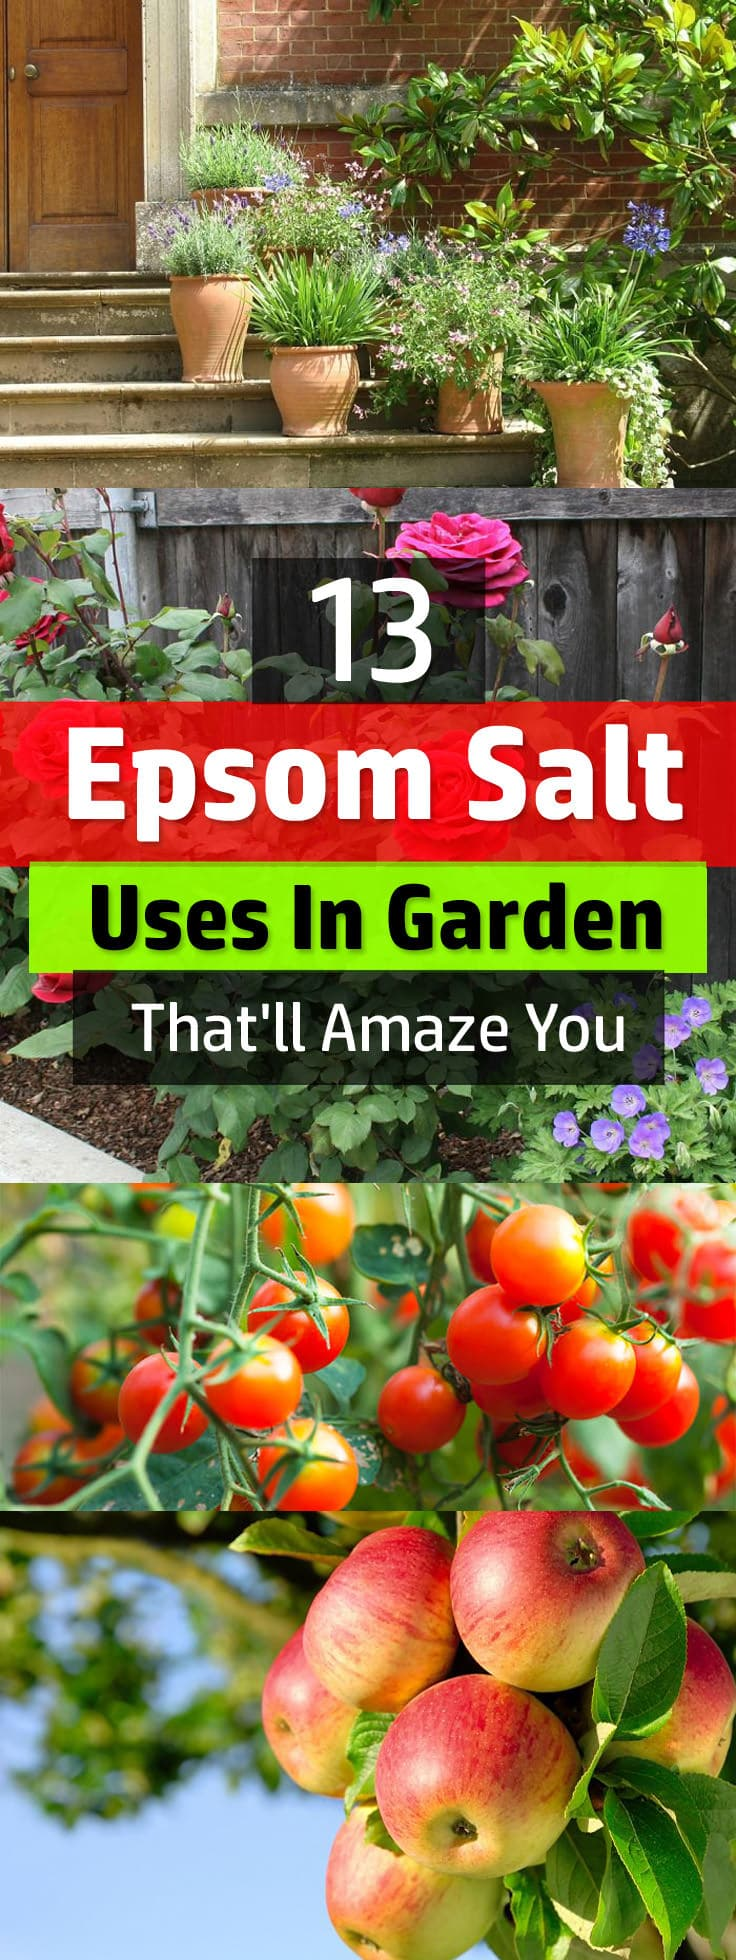 Those Who Use It Swear That Using Epsom Salt On Plants Make Them Lush And  Healthier